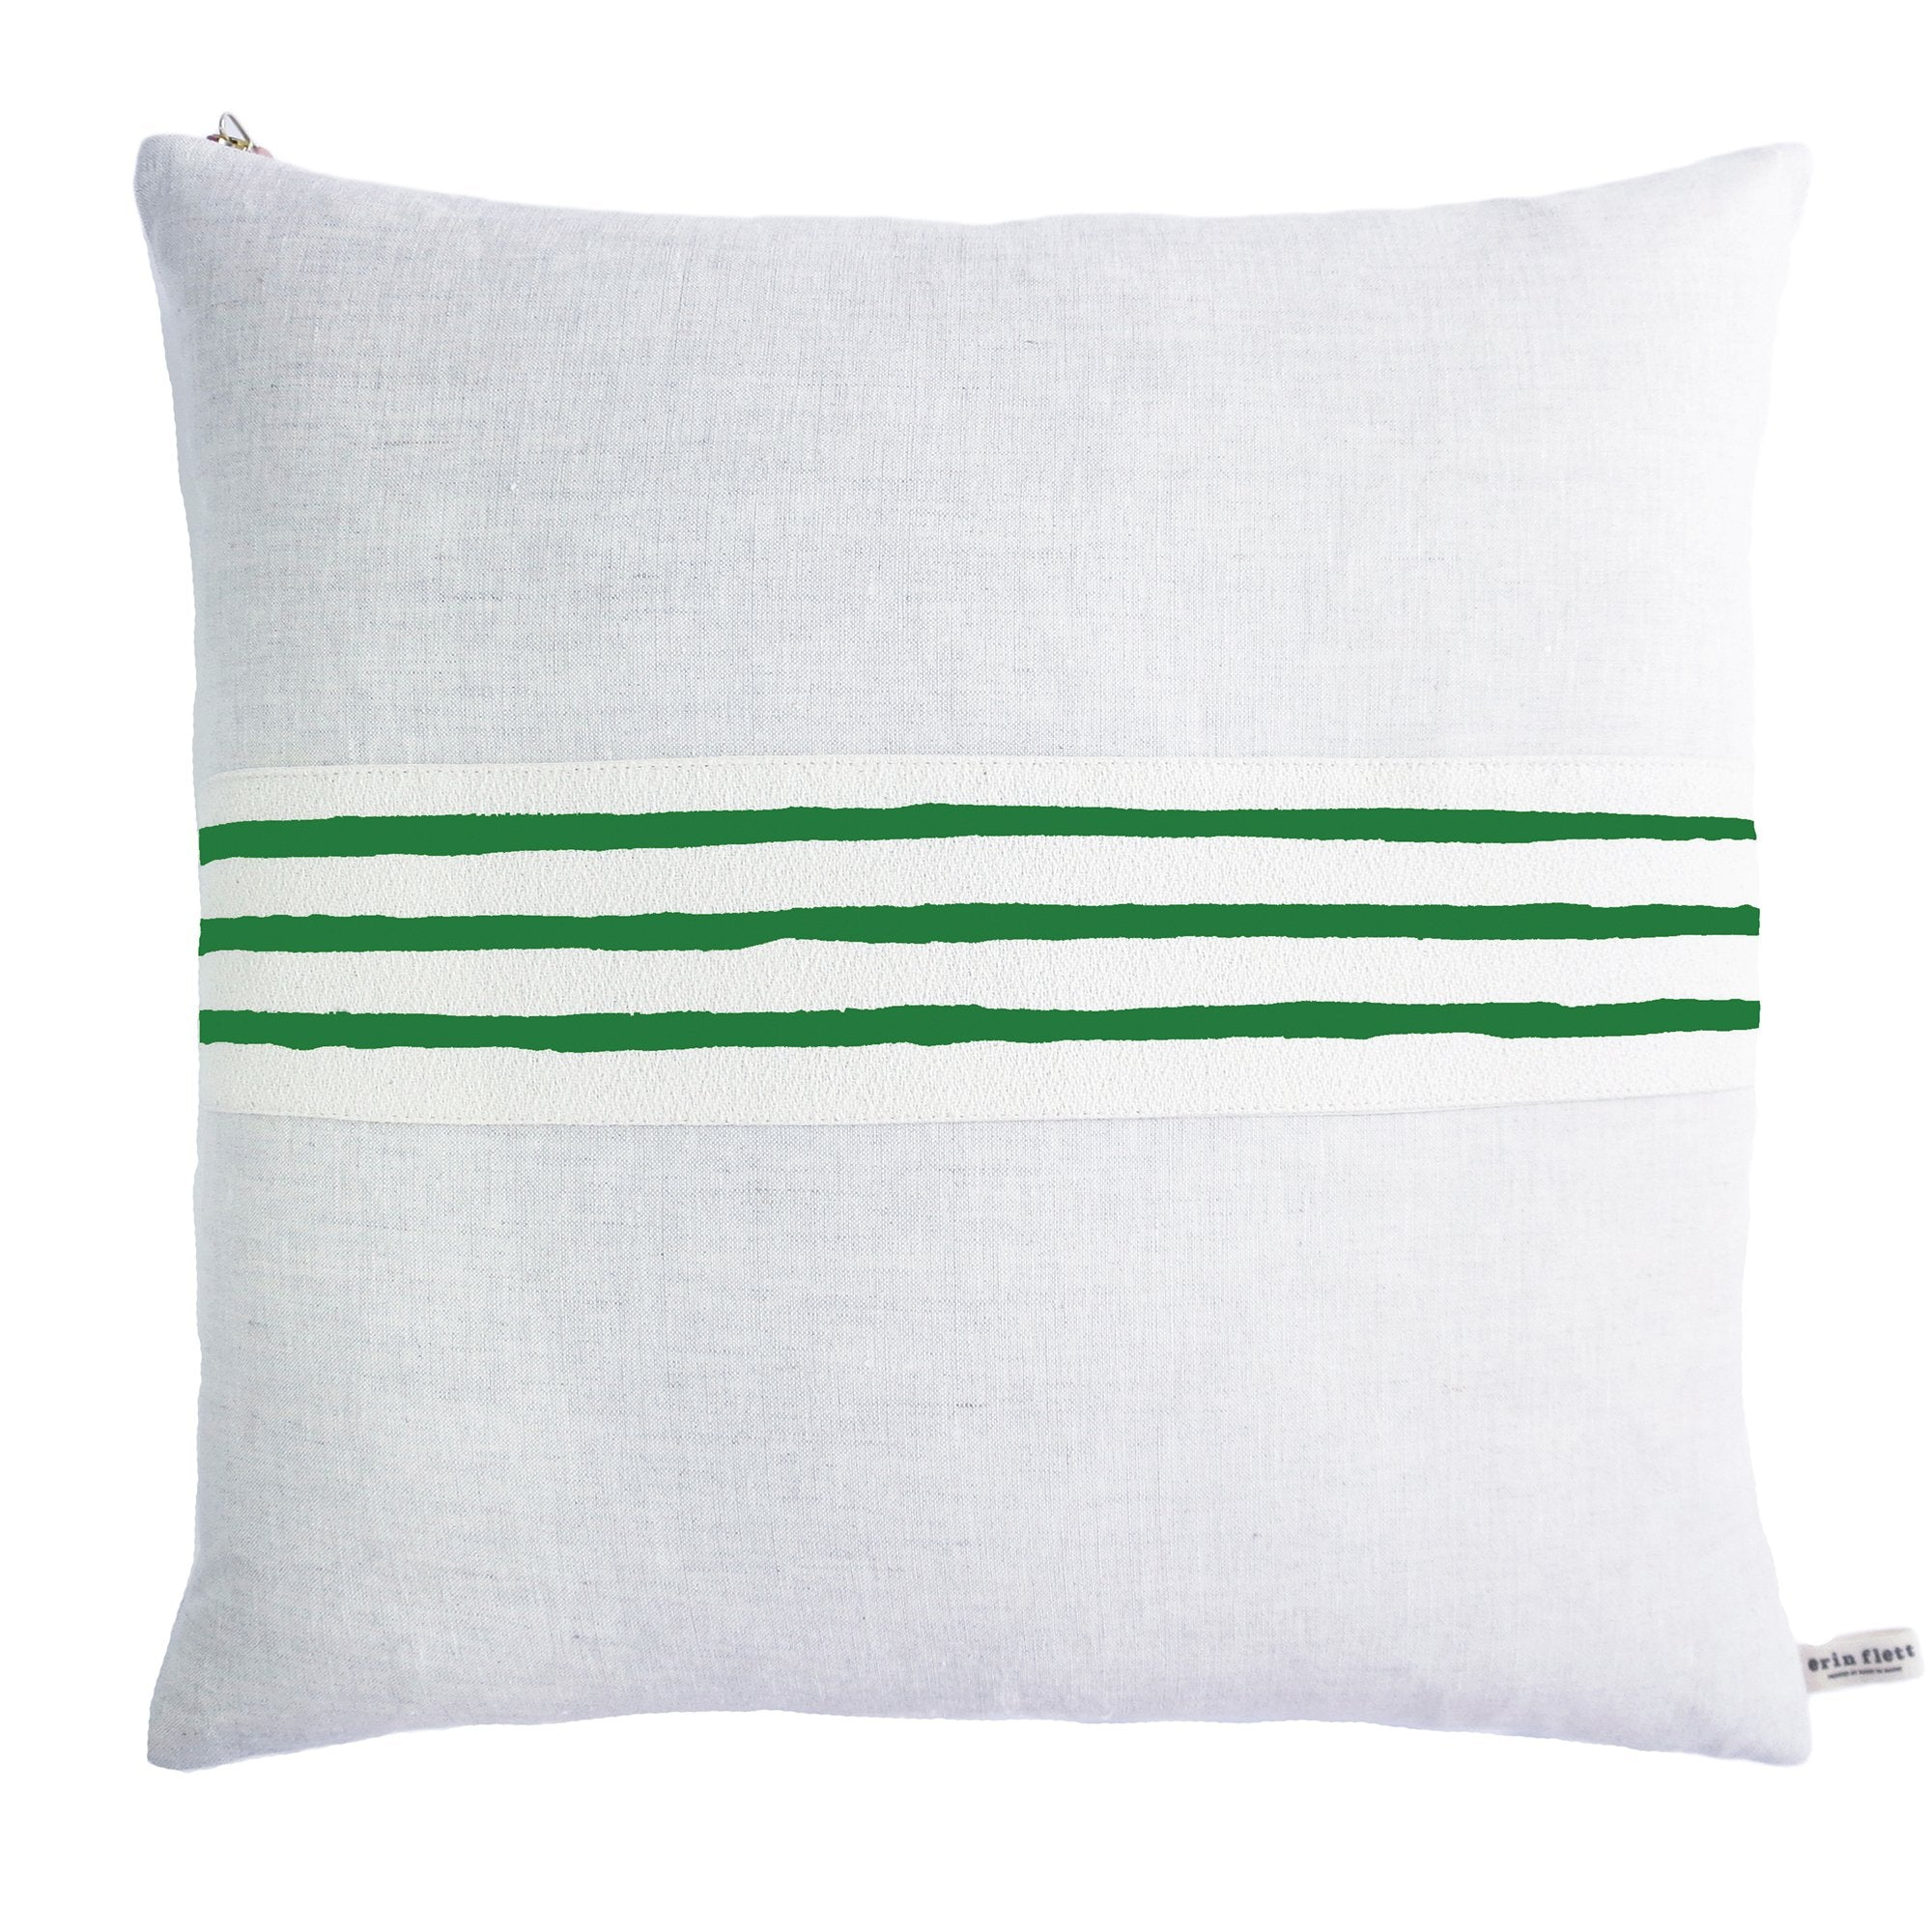 3 LINE KELLY BAND LINEN PILLOW COVER